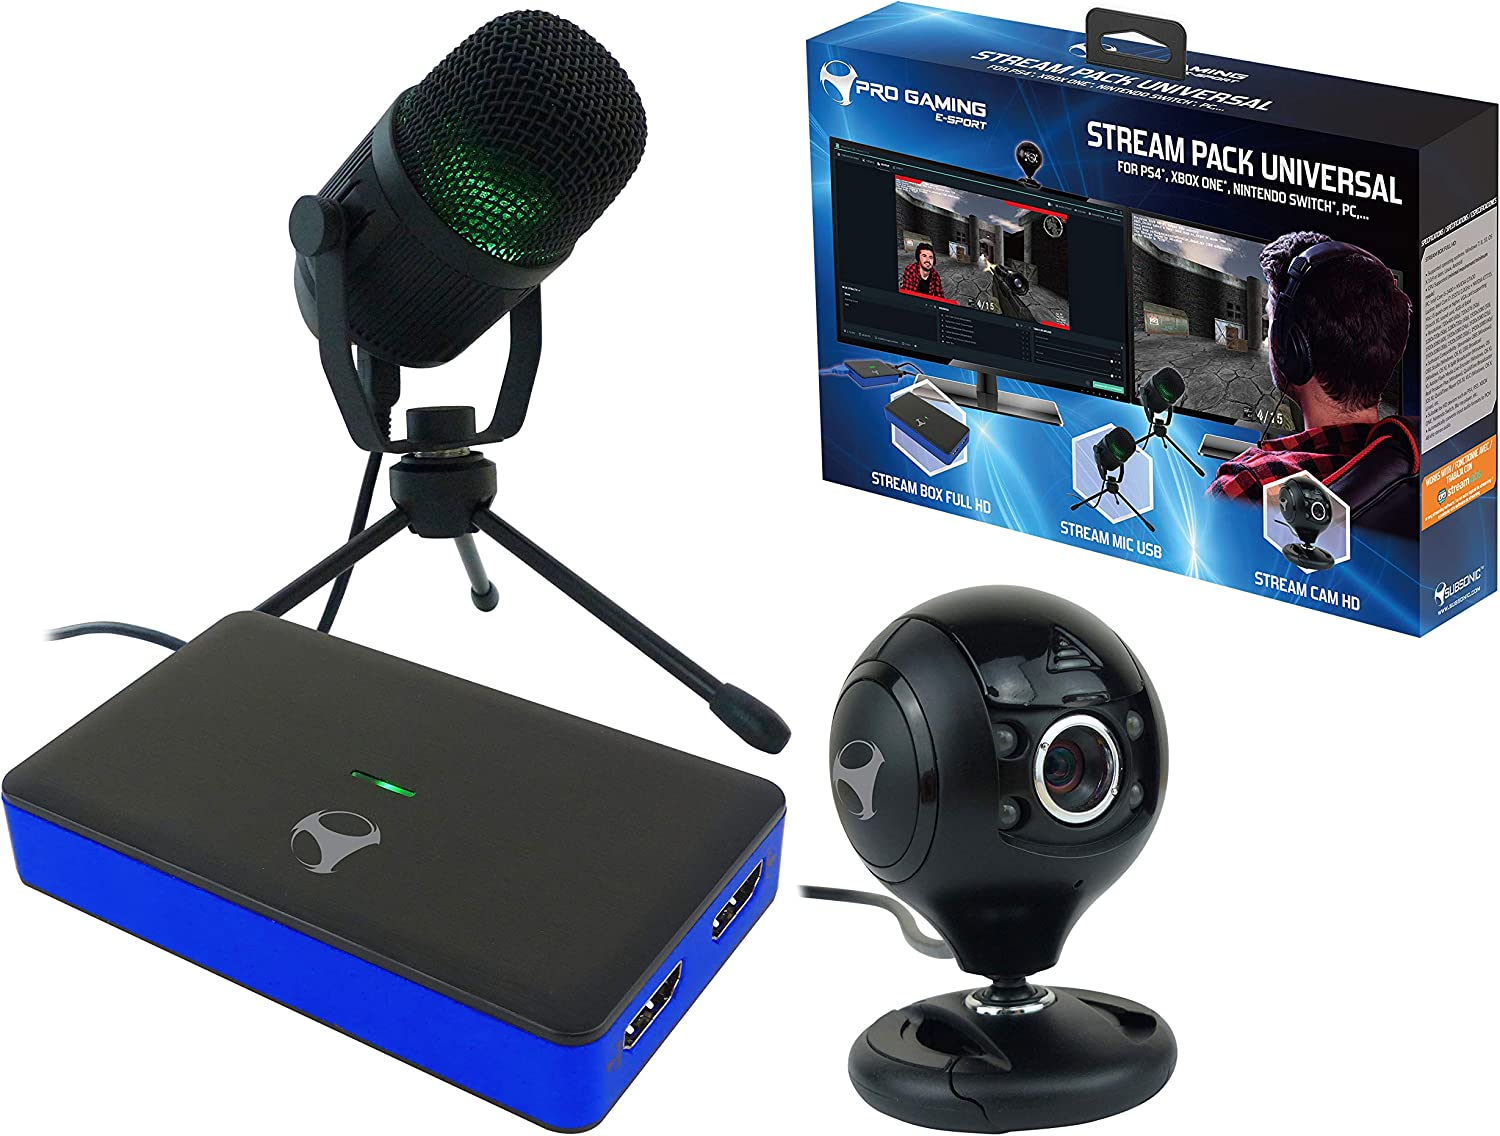 Subsonic - Stream Pack accesorios para jugadores Con caja de captura de vídeo Full HD (PS4, PS4 Slim, PS4 Pro, Xbox One, Xbox One x, Nintendo Switch, PC): Amazon.es: Videojuegos